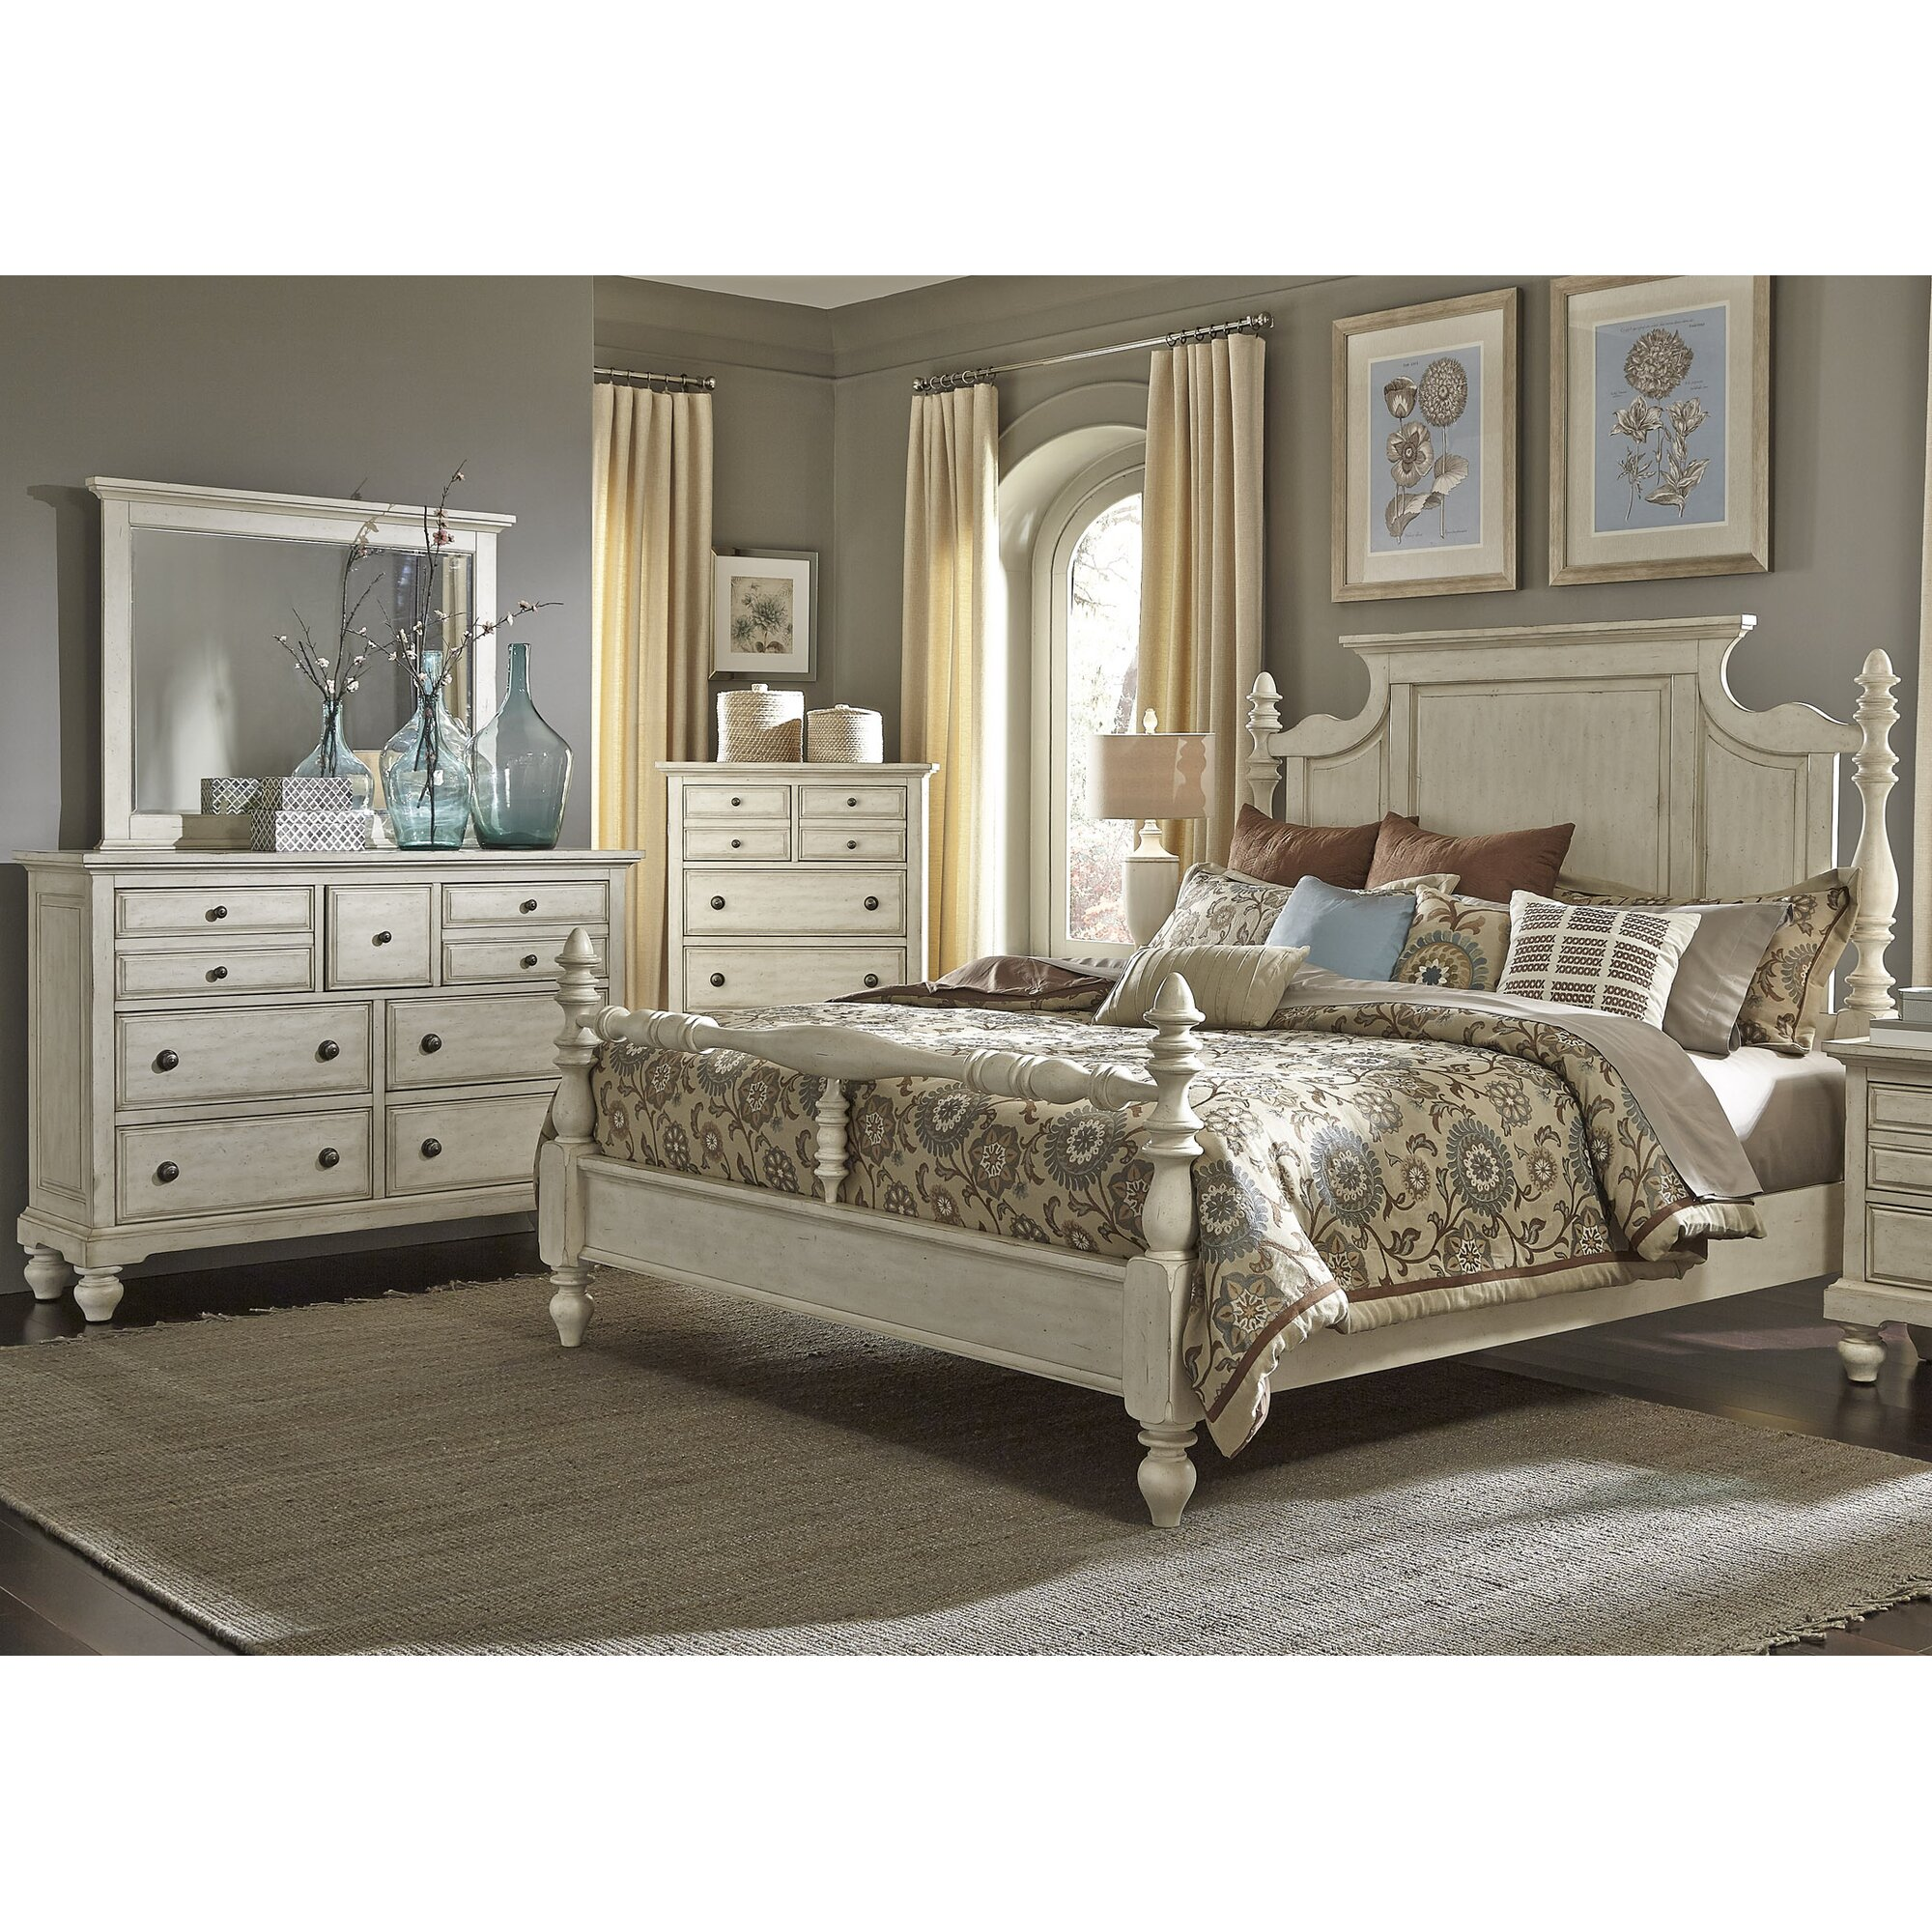 Pearson Four Poster Customizable Bedroom Set